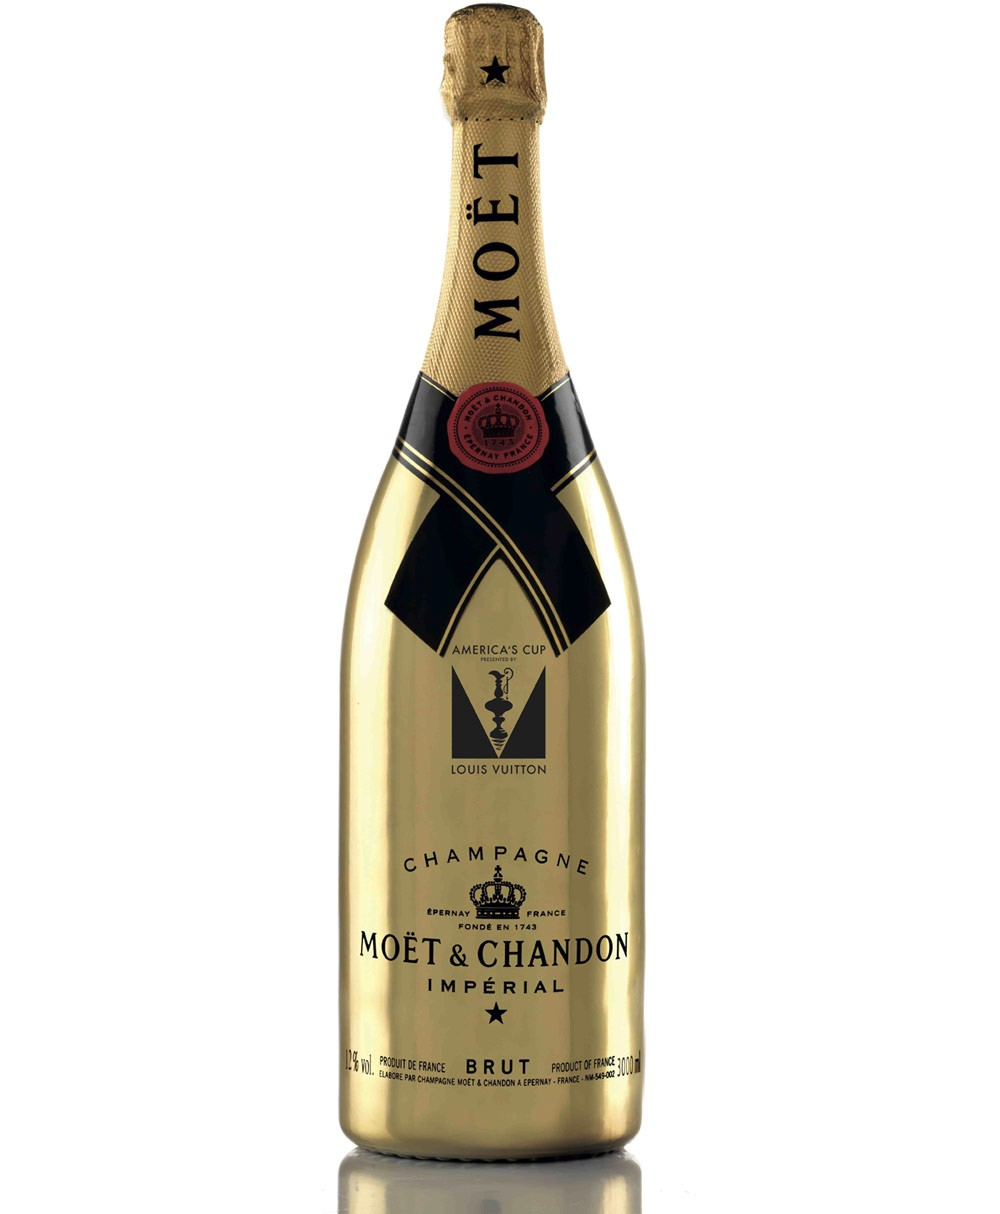 Moët & Chandon Champagne, official partner of the 35th edition of the America's Cup.